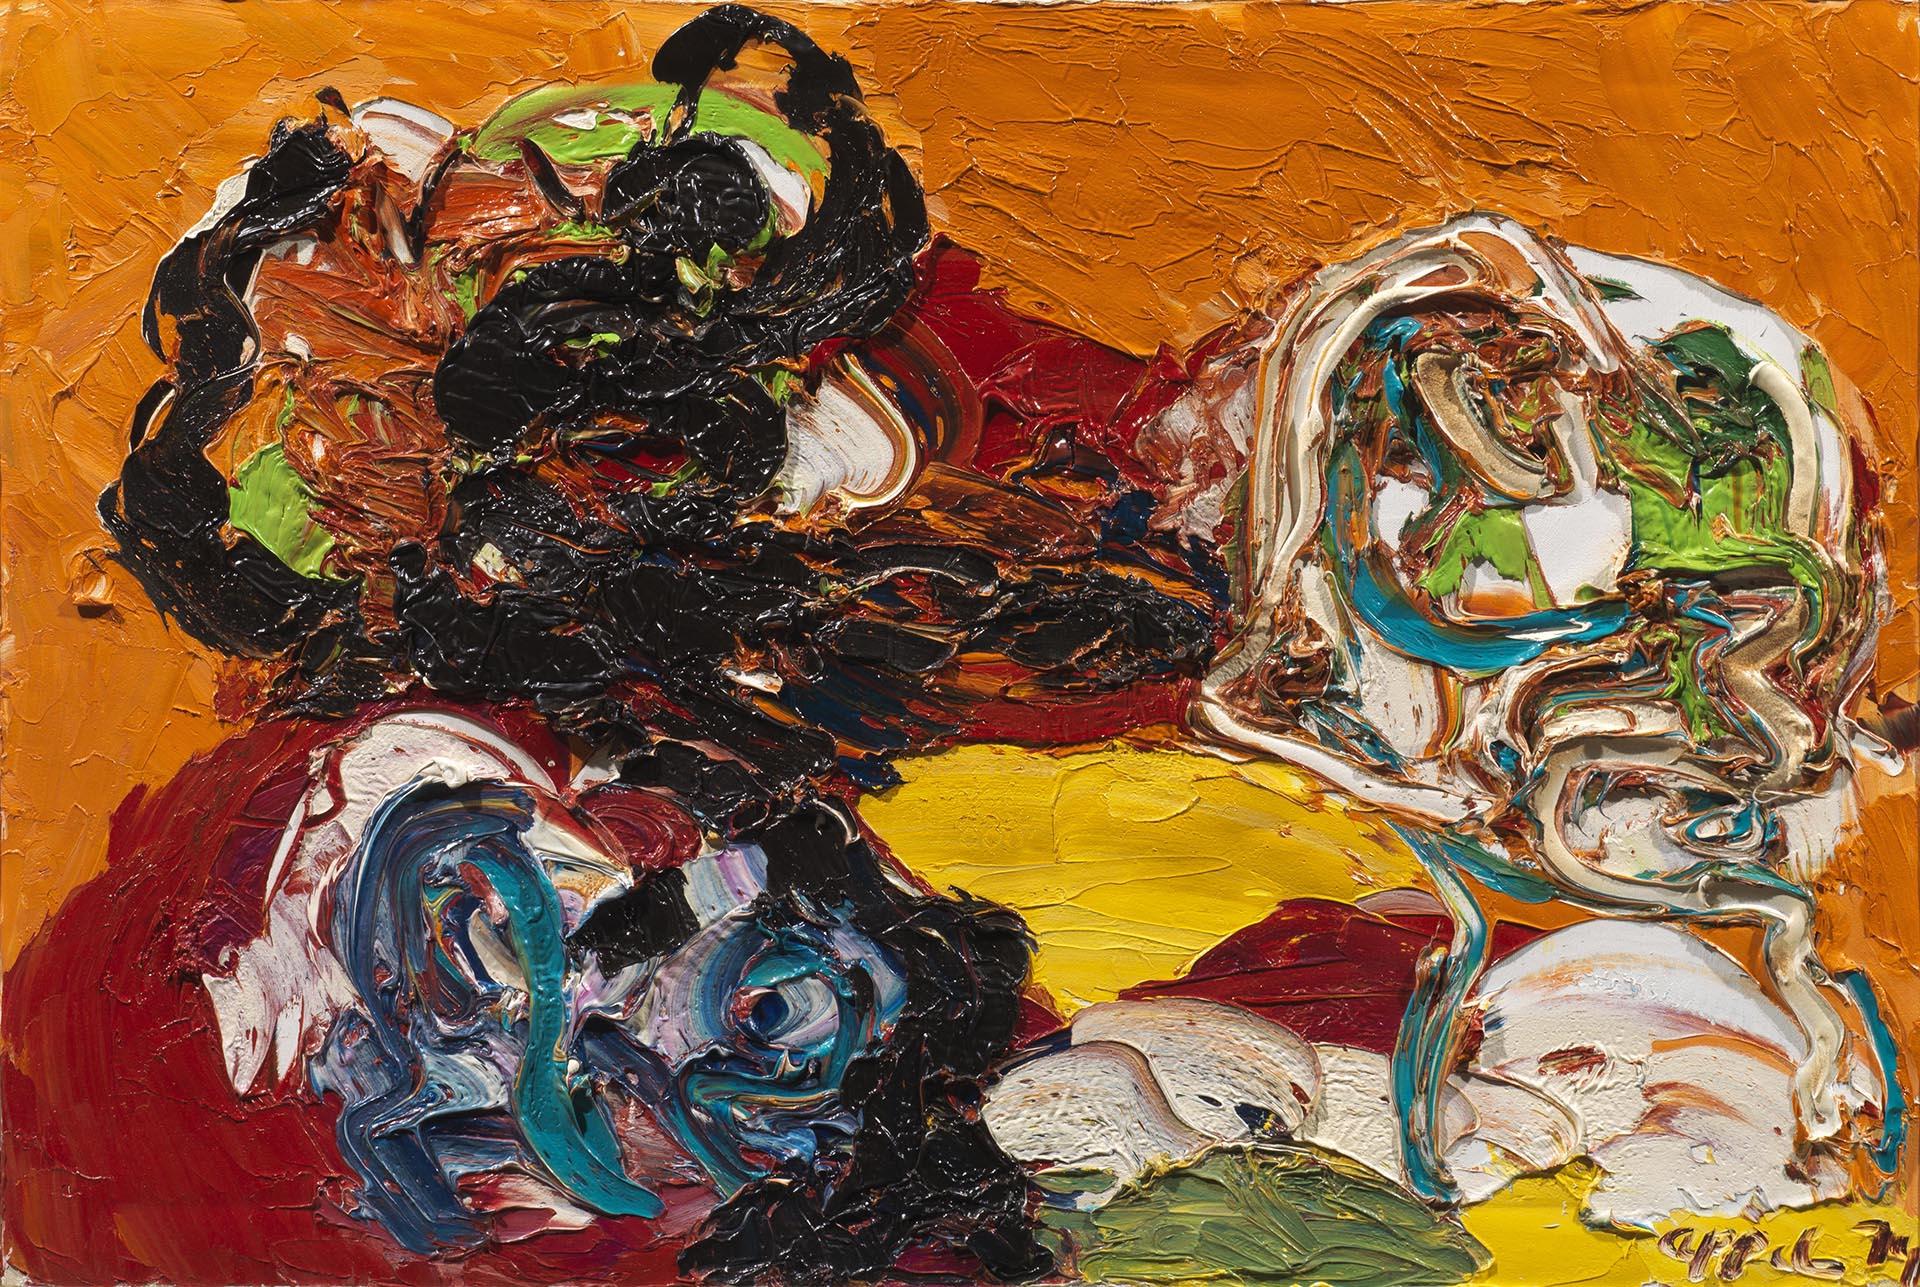 Appel, Untitled, 1971, 61x91 cm